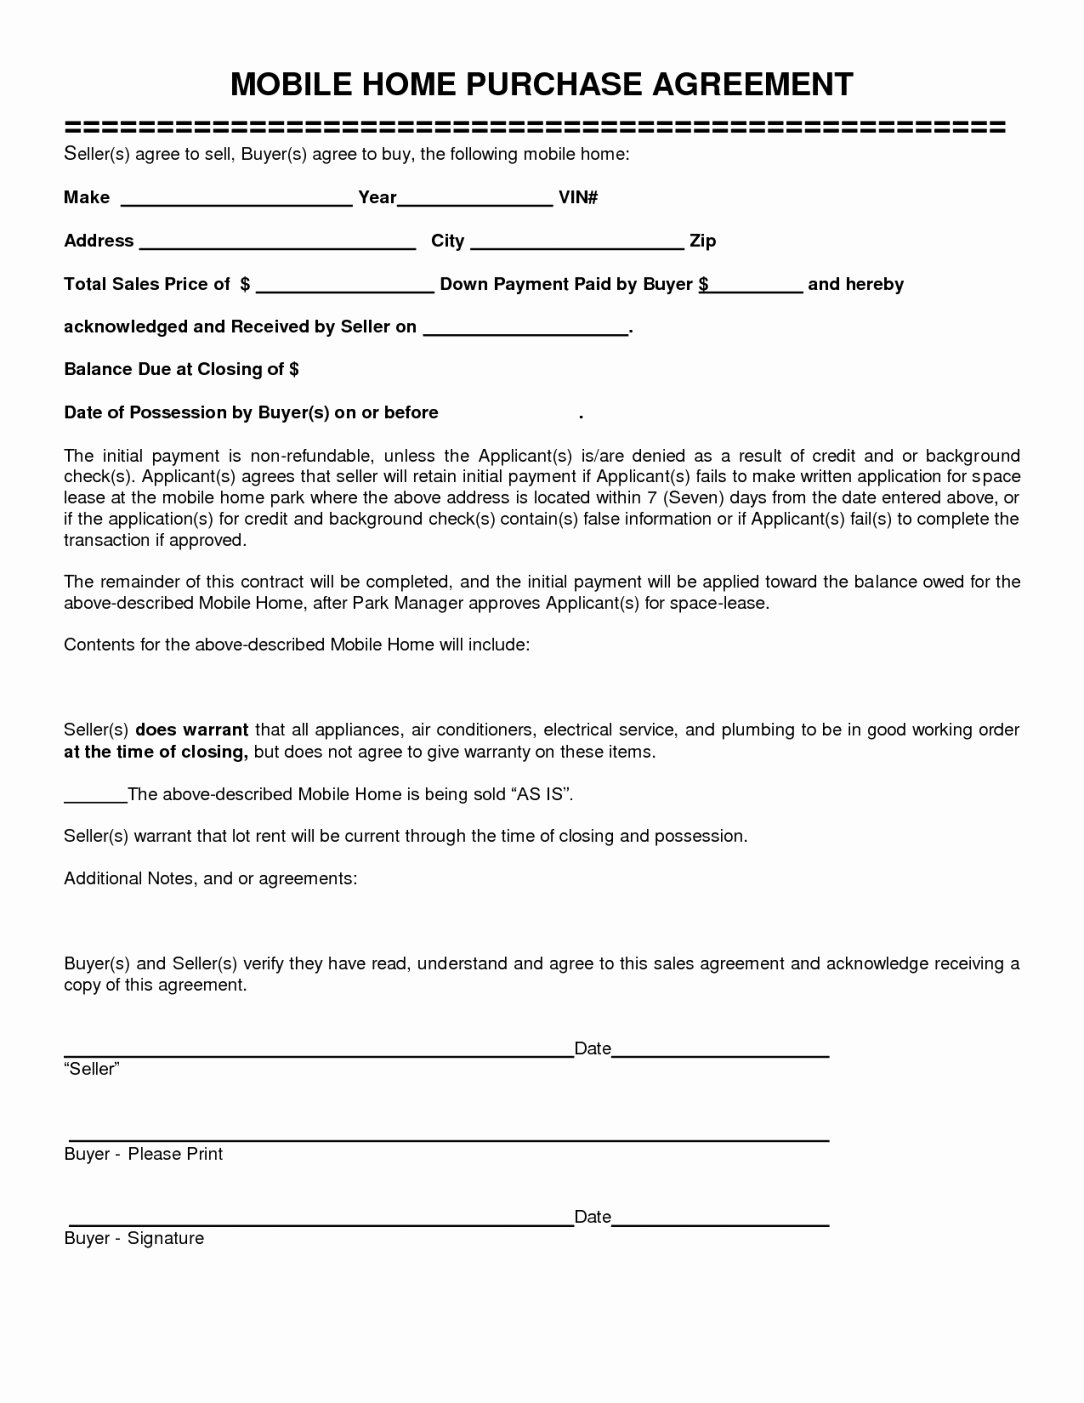 Sample Lottery Pool Agreement Fresh Mobile Home Purchase Agreement